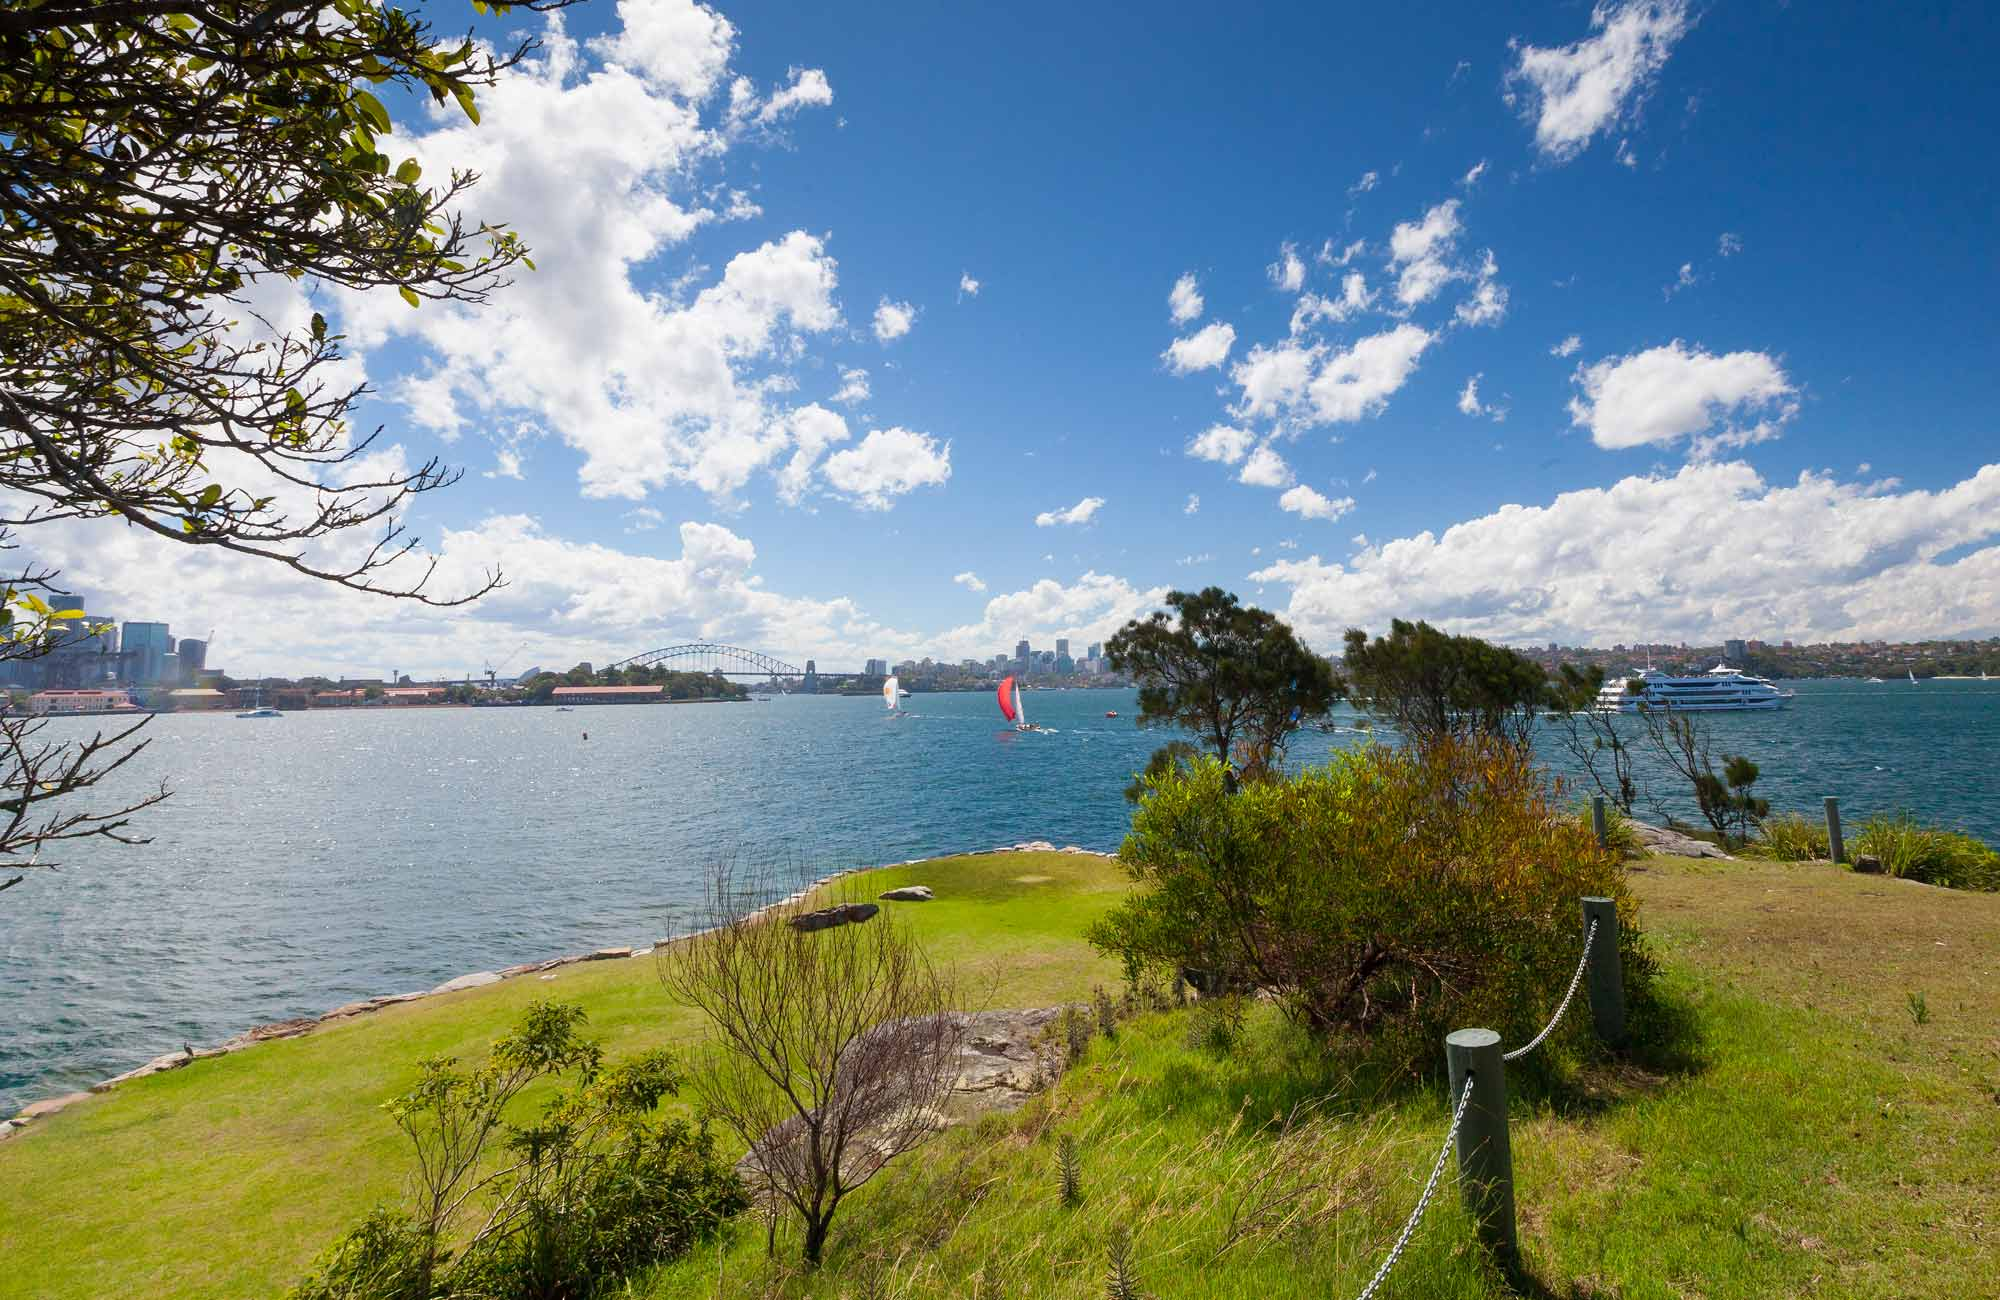 Clark Island, Sydney Harbour National Park. Photo: David Finnegan